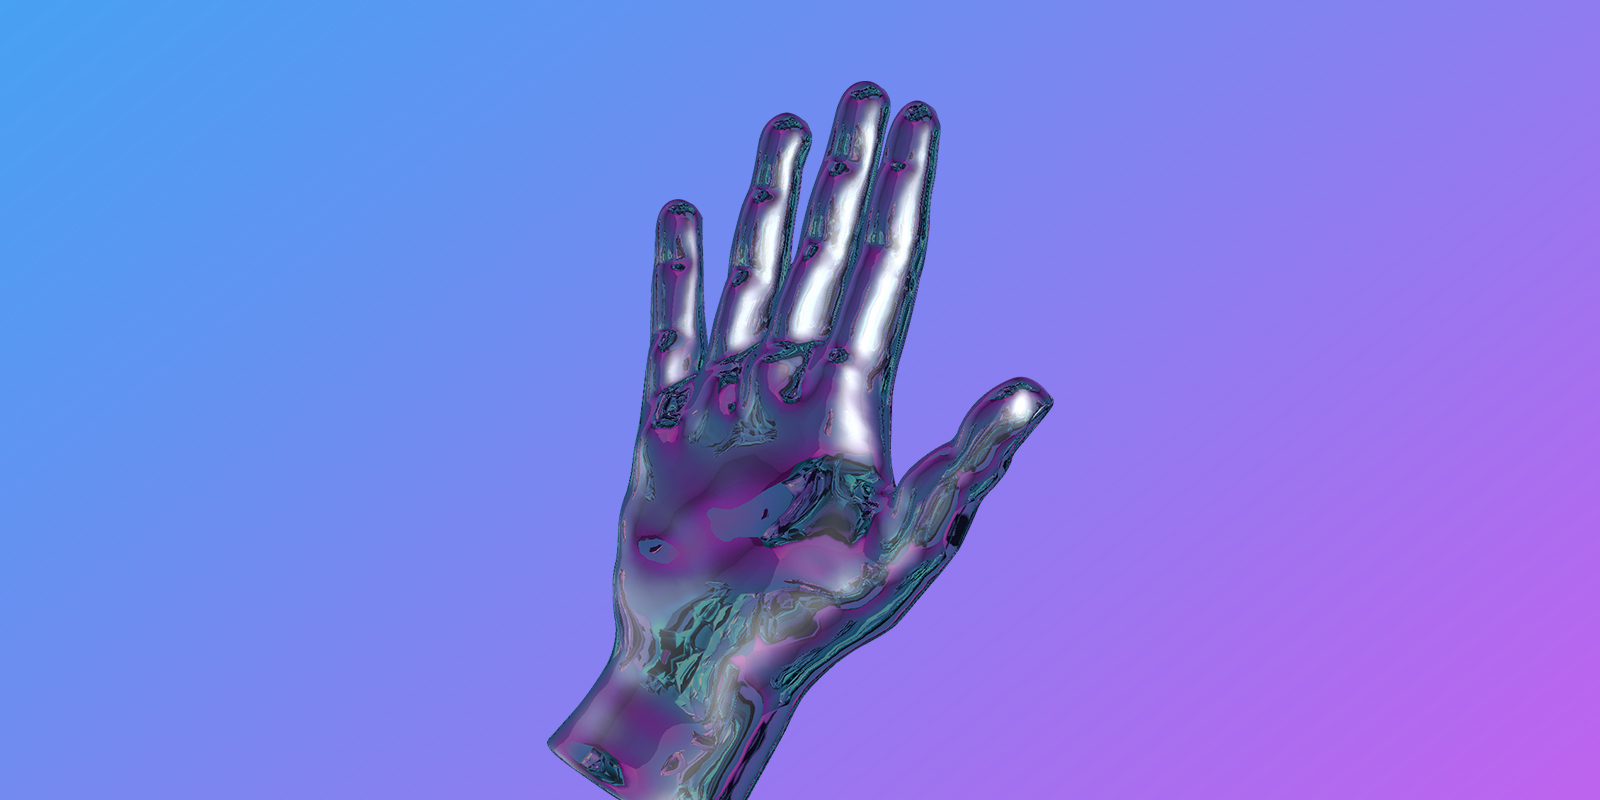 Project - Hands featured